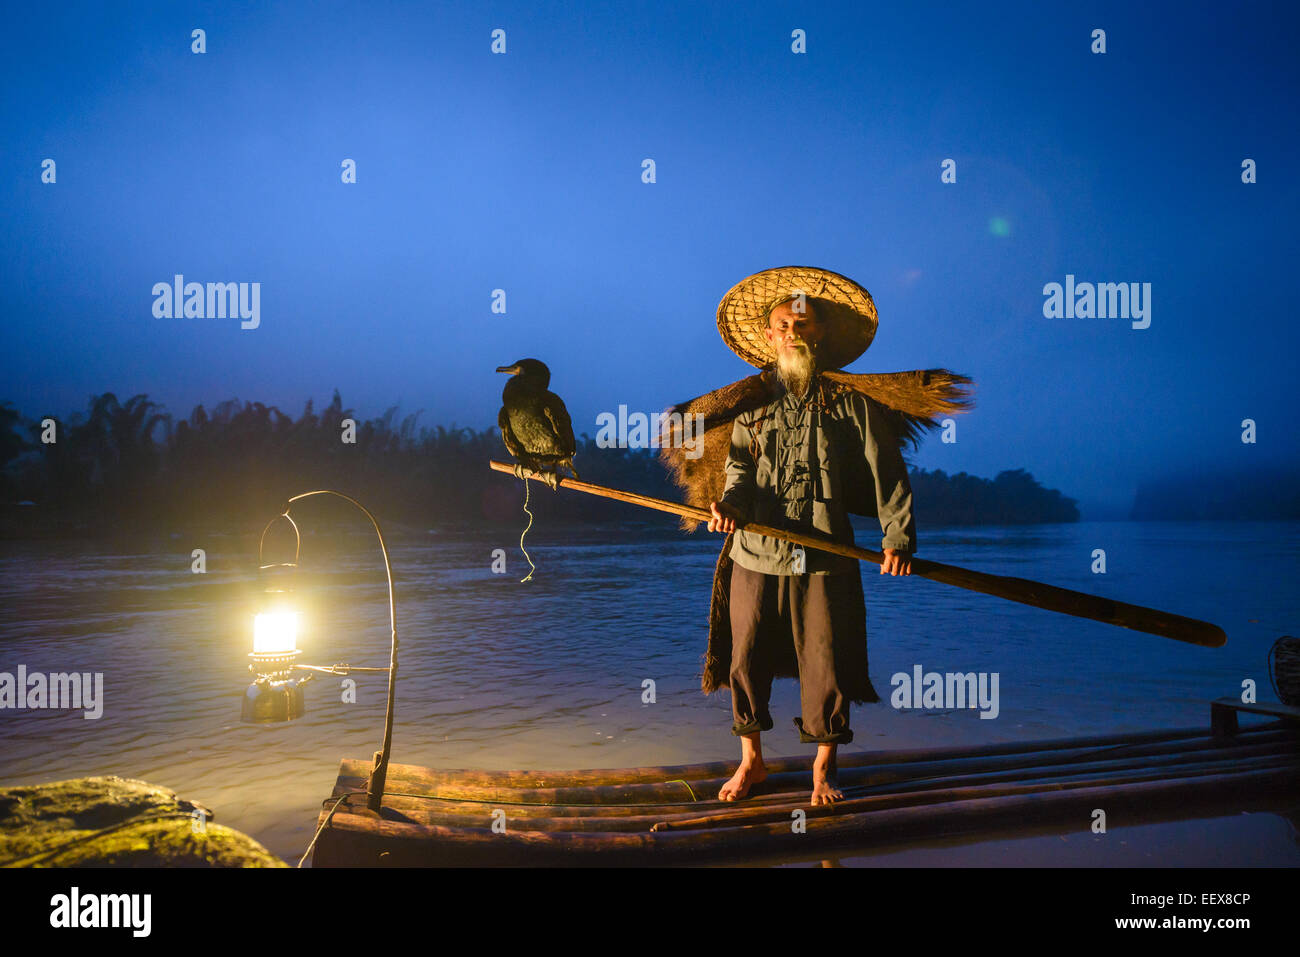 Cormorant fisherman and his birds on the Li River in Yangshuo, Guangxi, China. - Stock Image